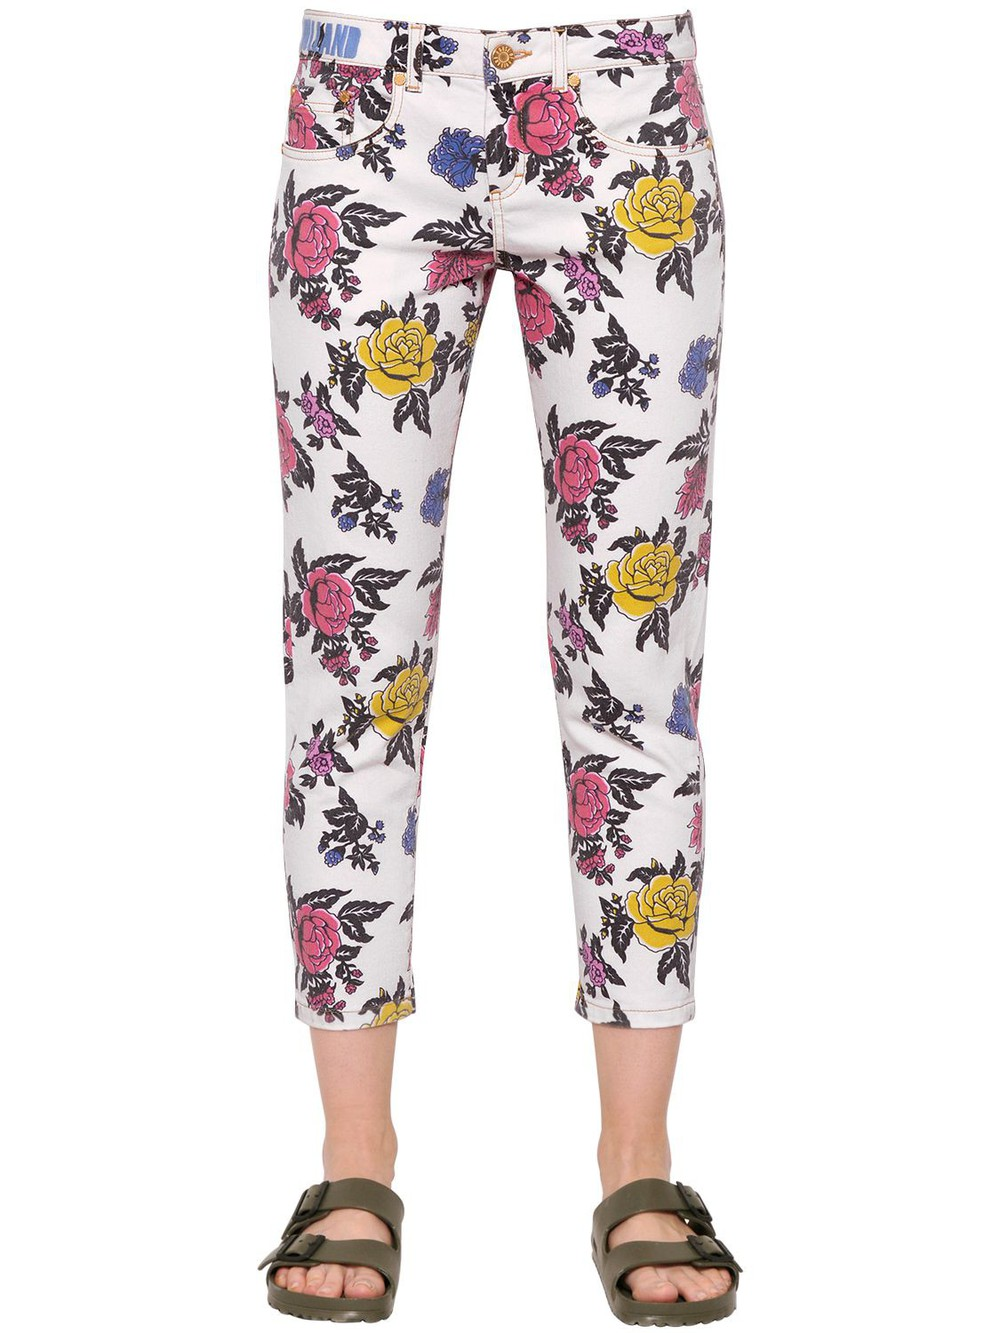 HOUSE OF HOLLAND Rose Printed Straight Cotton Denim Jeans in white / multi